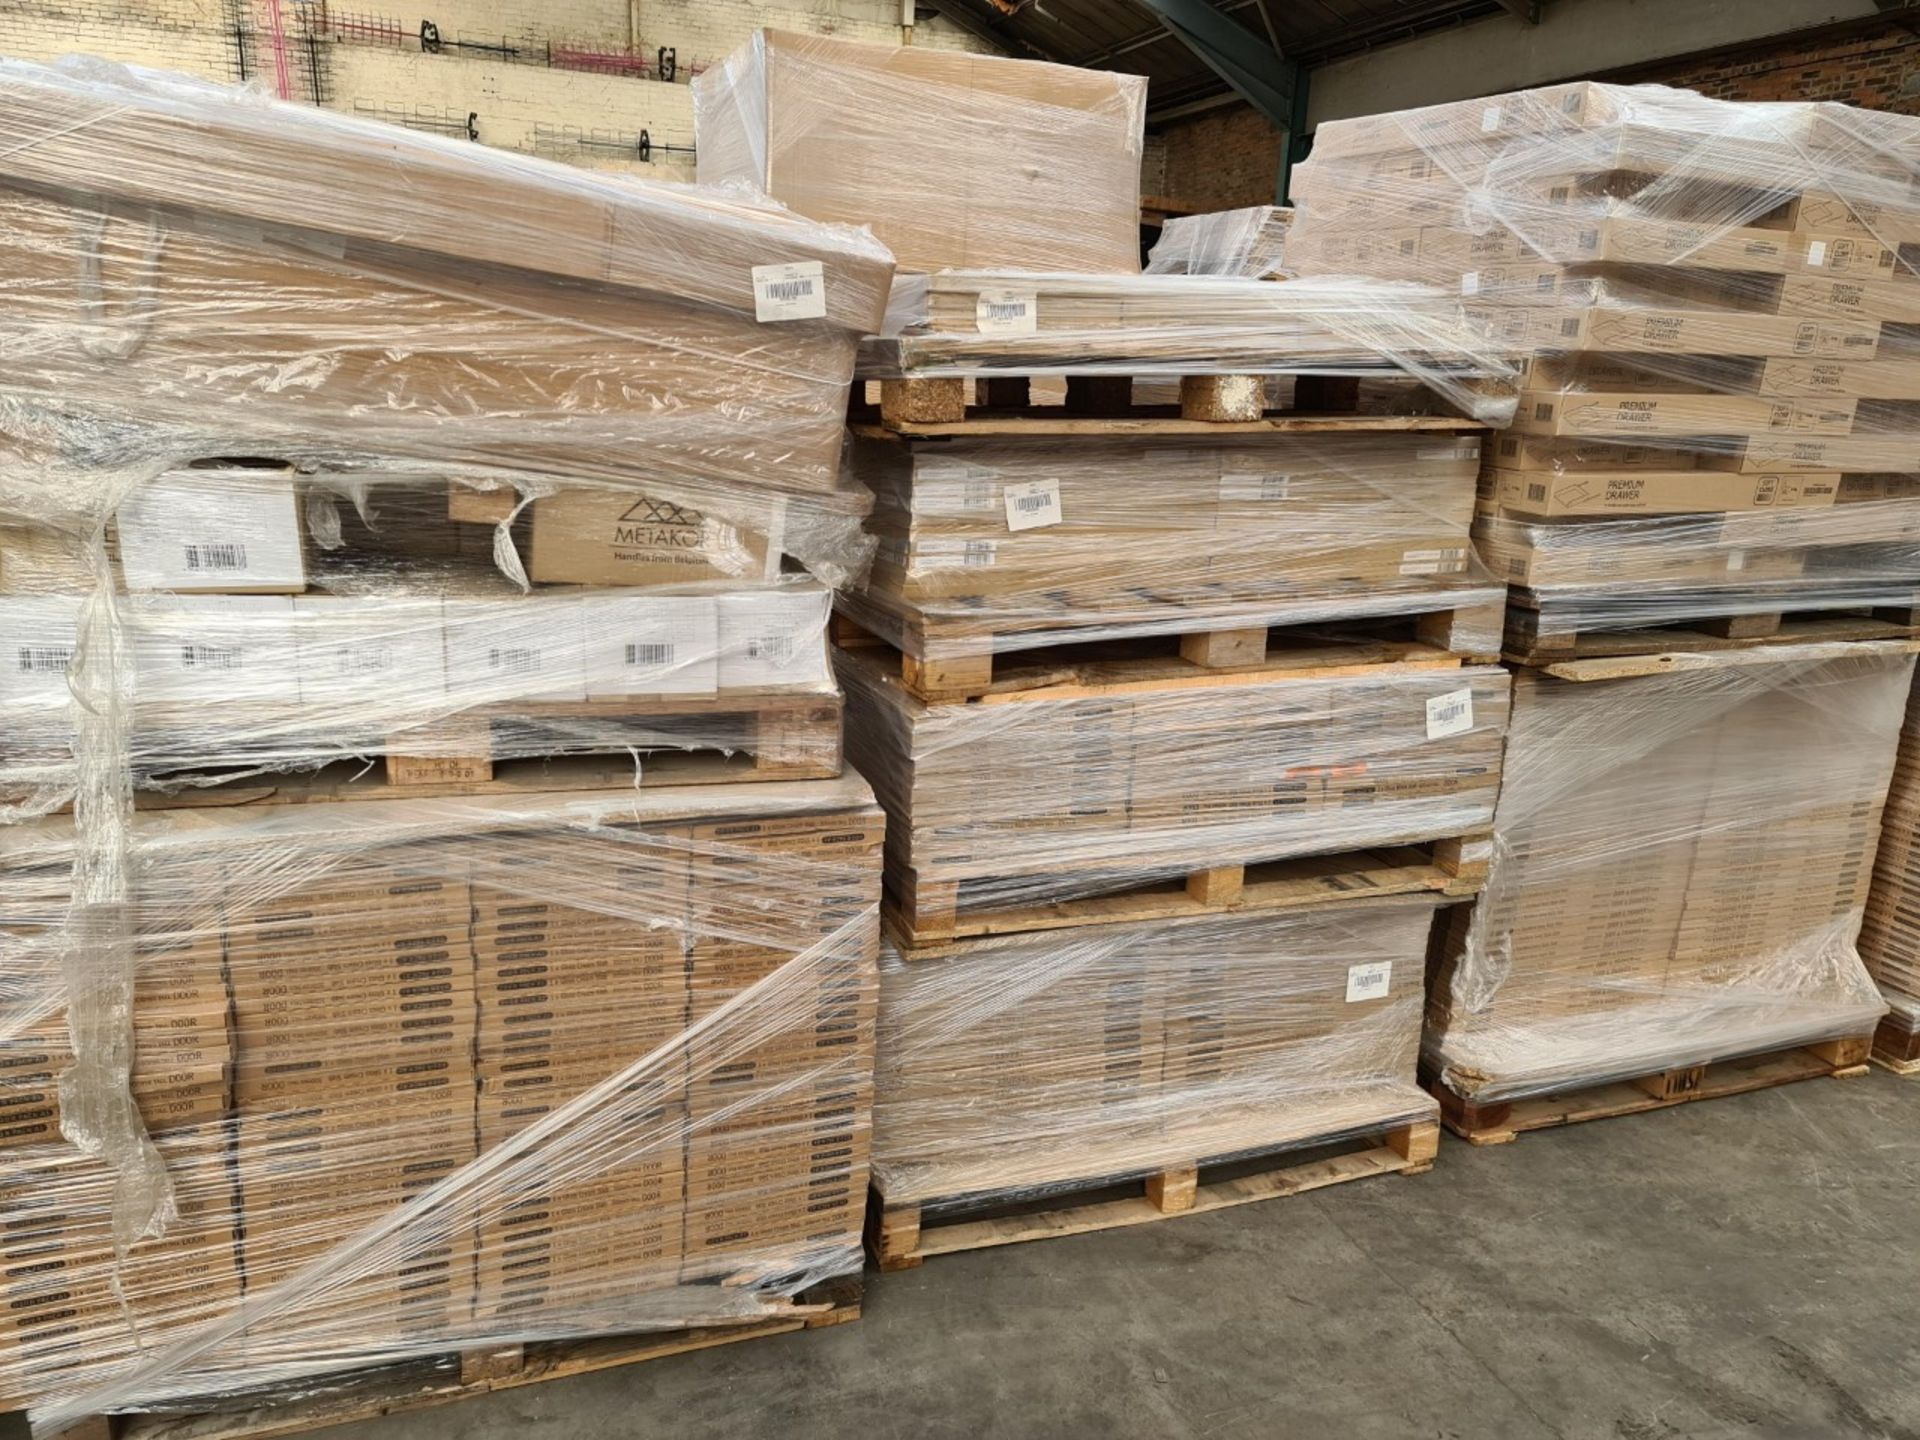 Kitchen Distributor Stock Liquidation-Circa 5,040 items of Brand-New Kitchen Goods - Sold As One Lot - Image 11 of 42